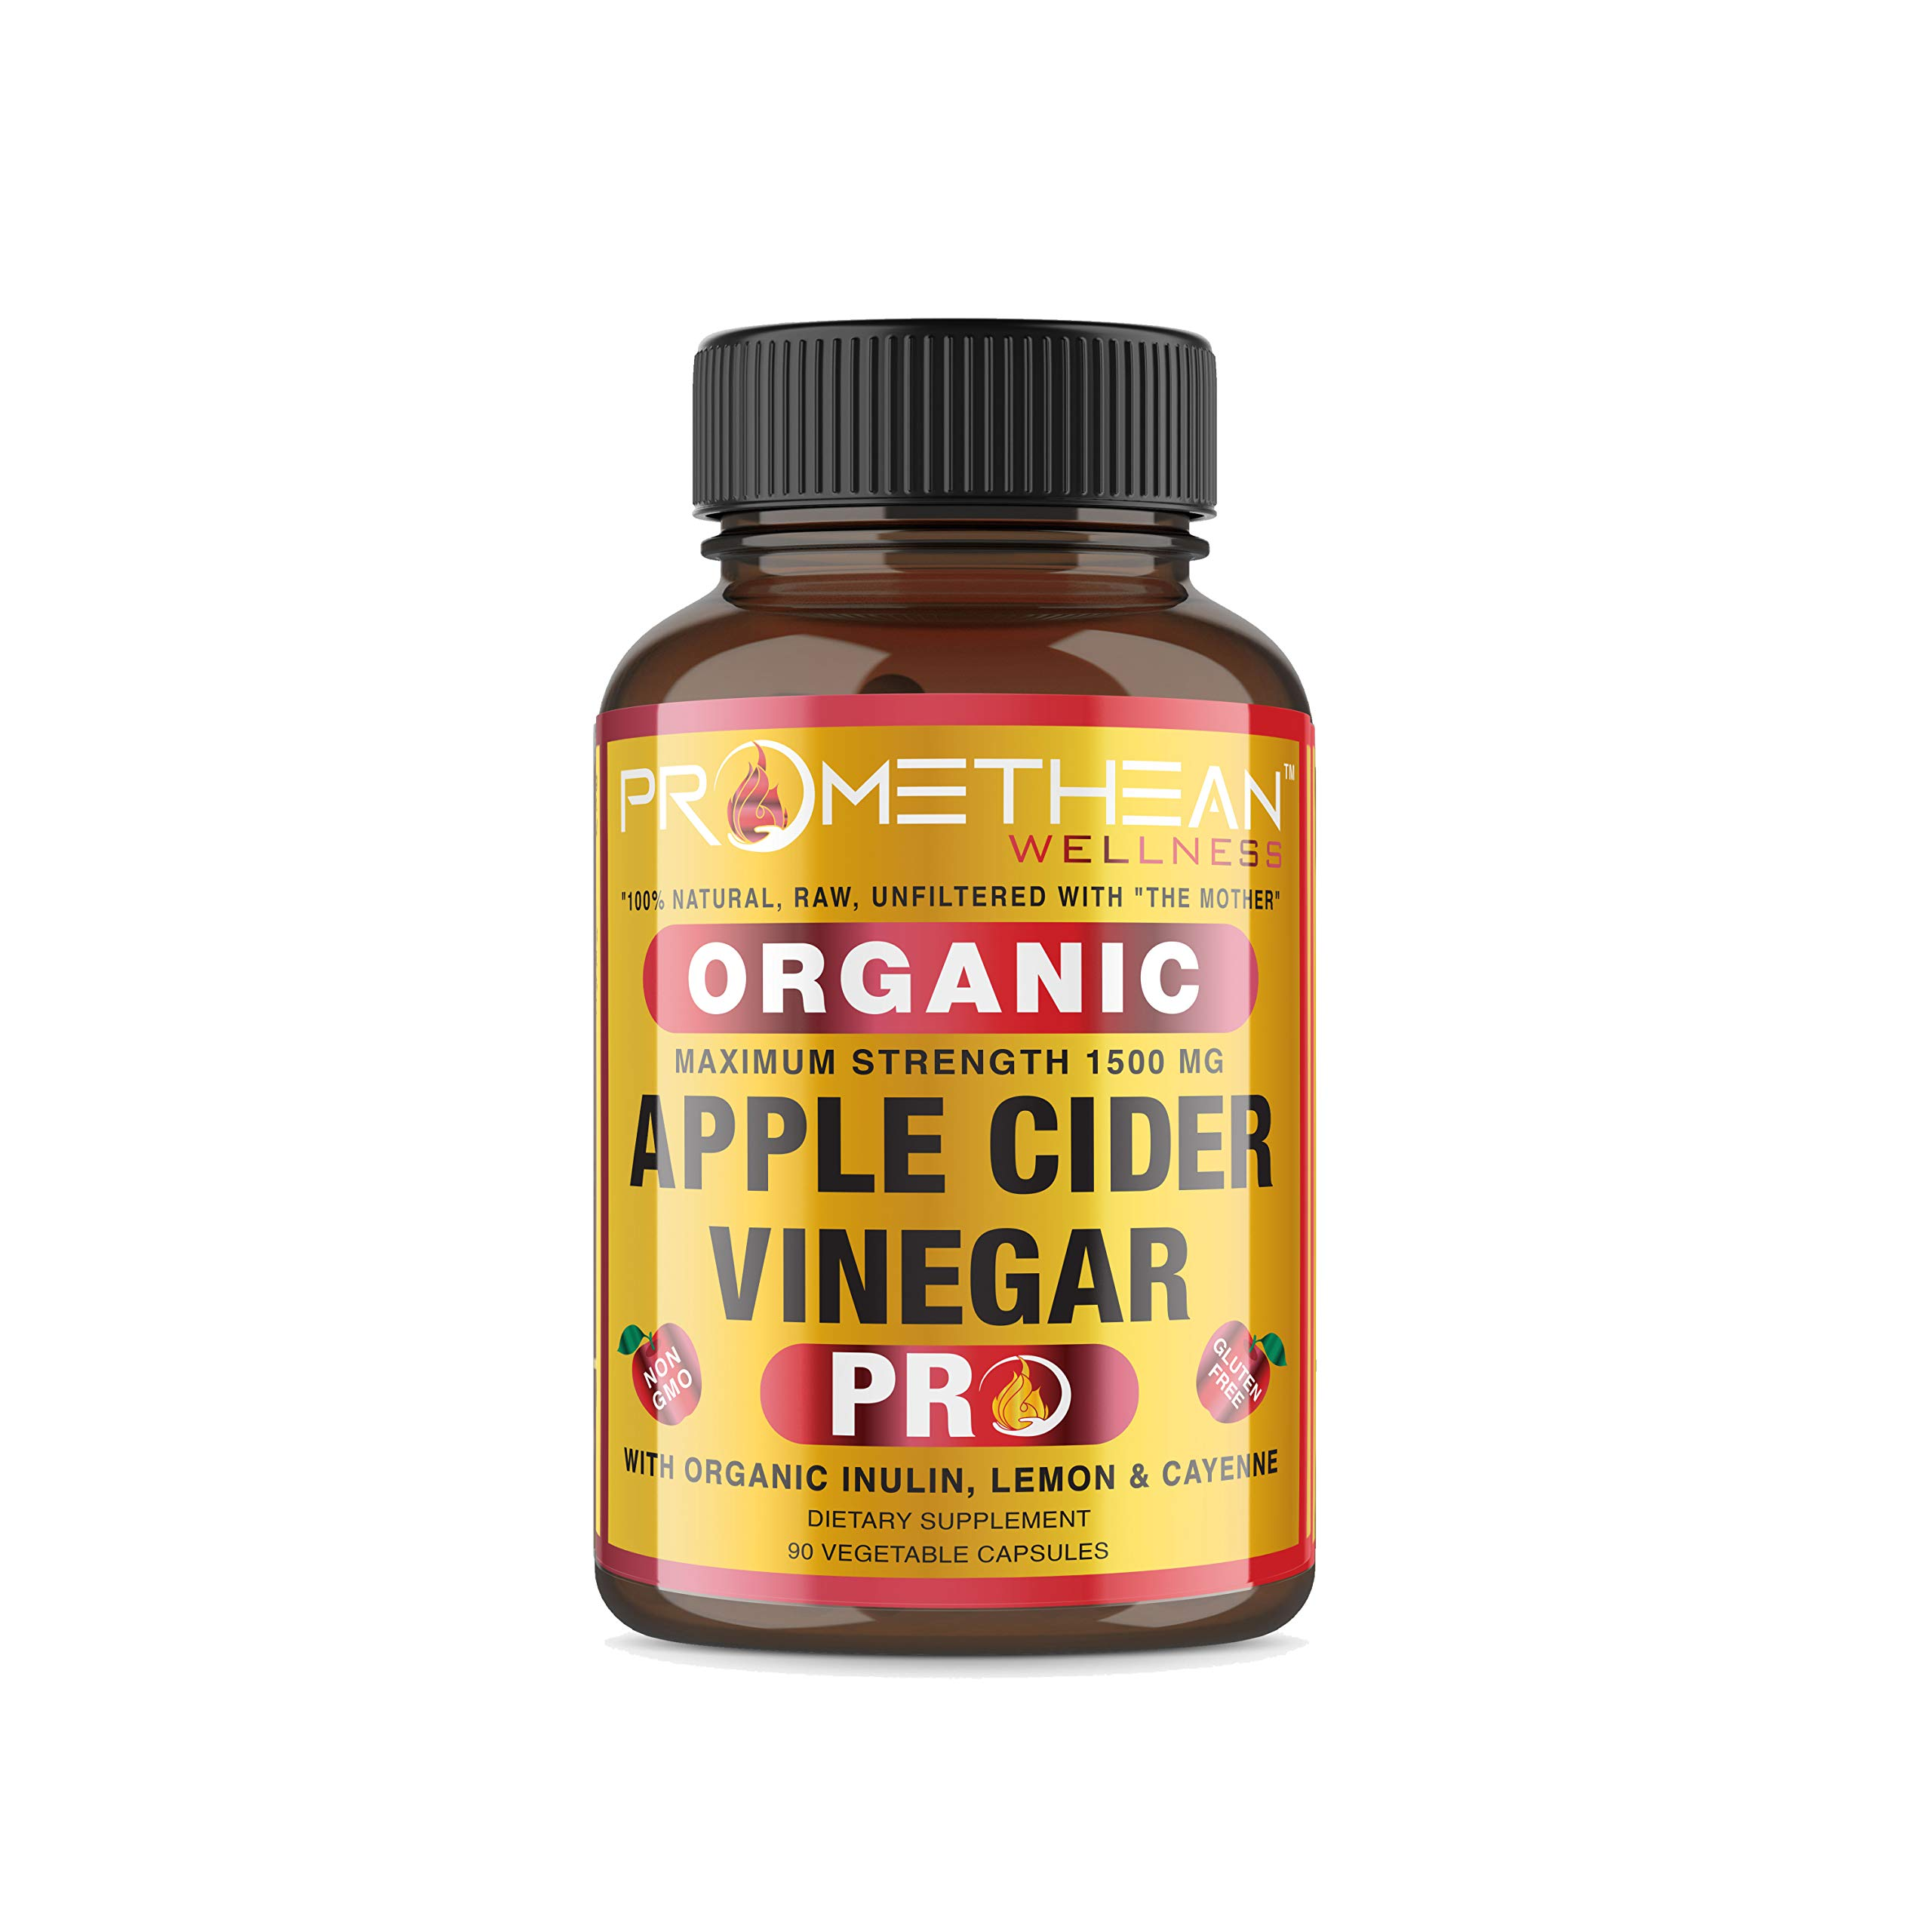 Organic Apple Cider Vinegar Capsules ACV PRO Diet Pills Detox Cleanse for Weight Loss Raw Unfiltered With Mother Powder Supplements Tablets Vitamins Cayenne Pepper Inulin Prebiotics Lemon 1500mg 90 ct by Promethean Wellness LLC (Image #7)